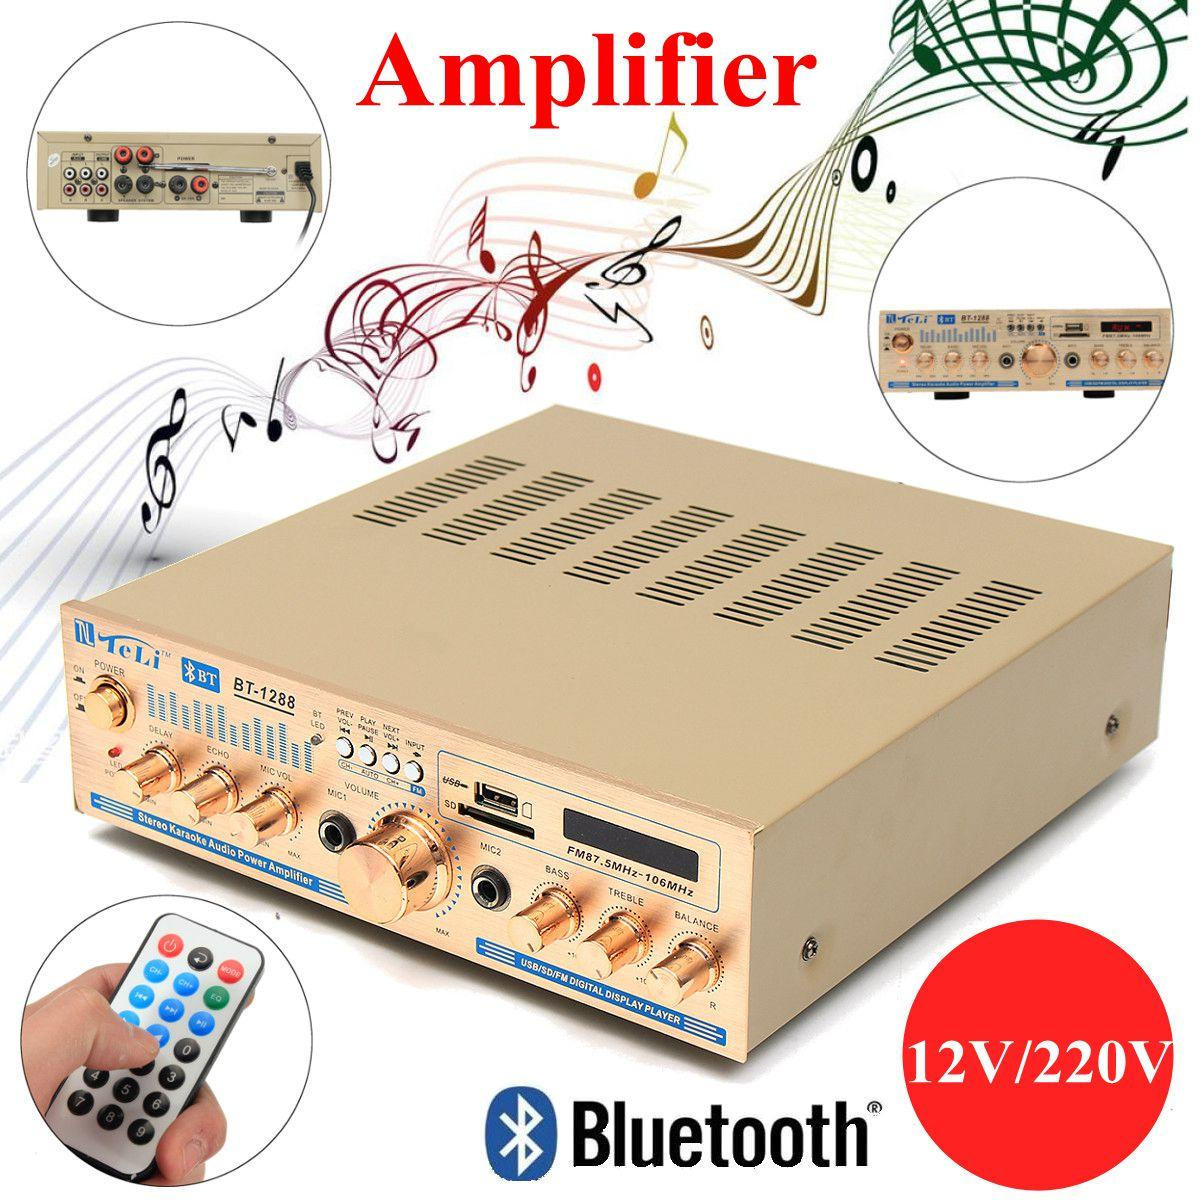 2*100w Amplifier Bluetooth 12V/220V Stereo Audio Amplifier for Home 2CH High power with card radio DC power amplifier free shipping czh618f 100c 100w 2u fm stereo radio transmitter exciter power adjustable from 0 to 100w